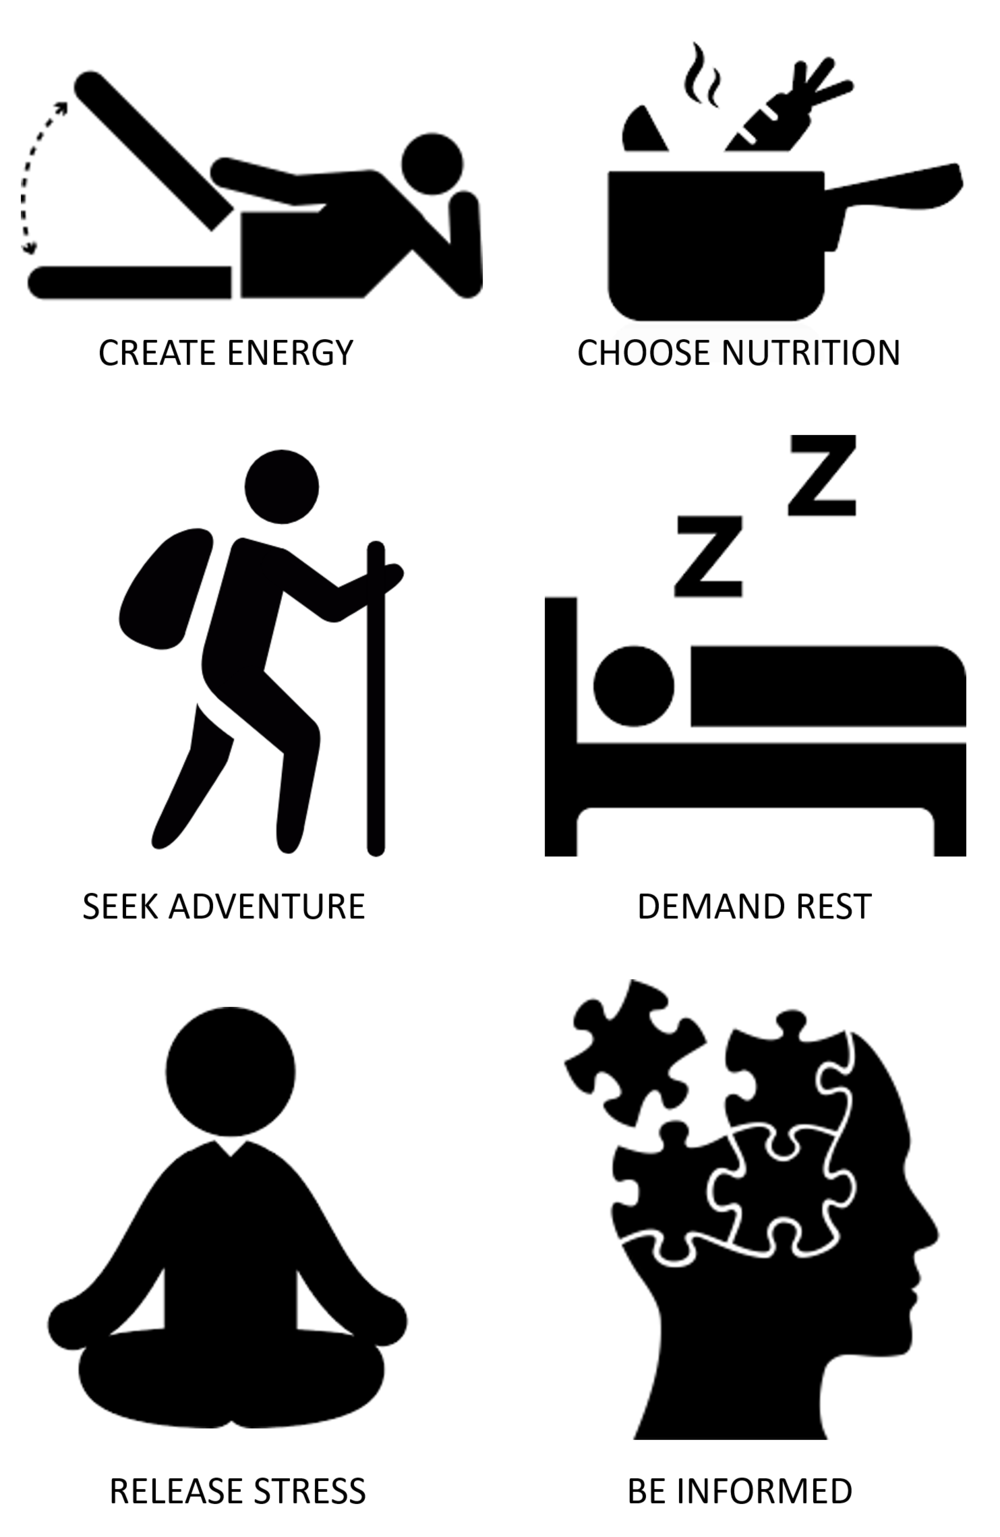 The House of Health - Six elements that are central to maintaining your personal House of Health, and working towards personal quality health.